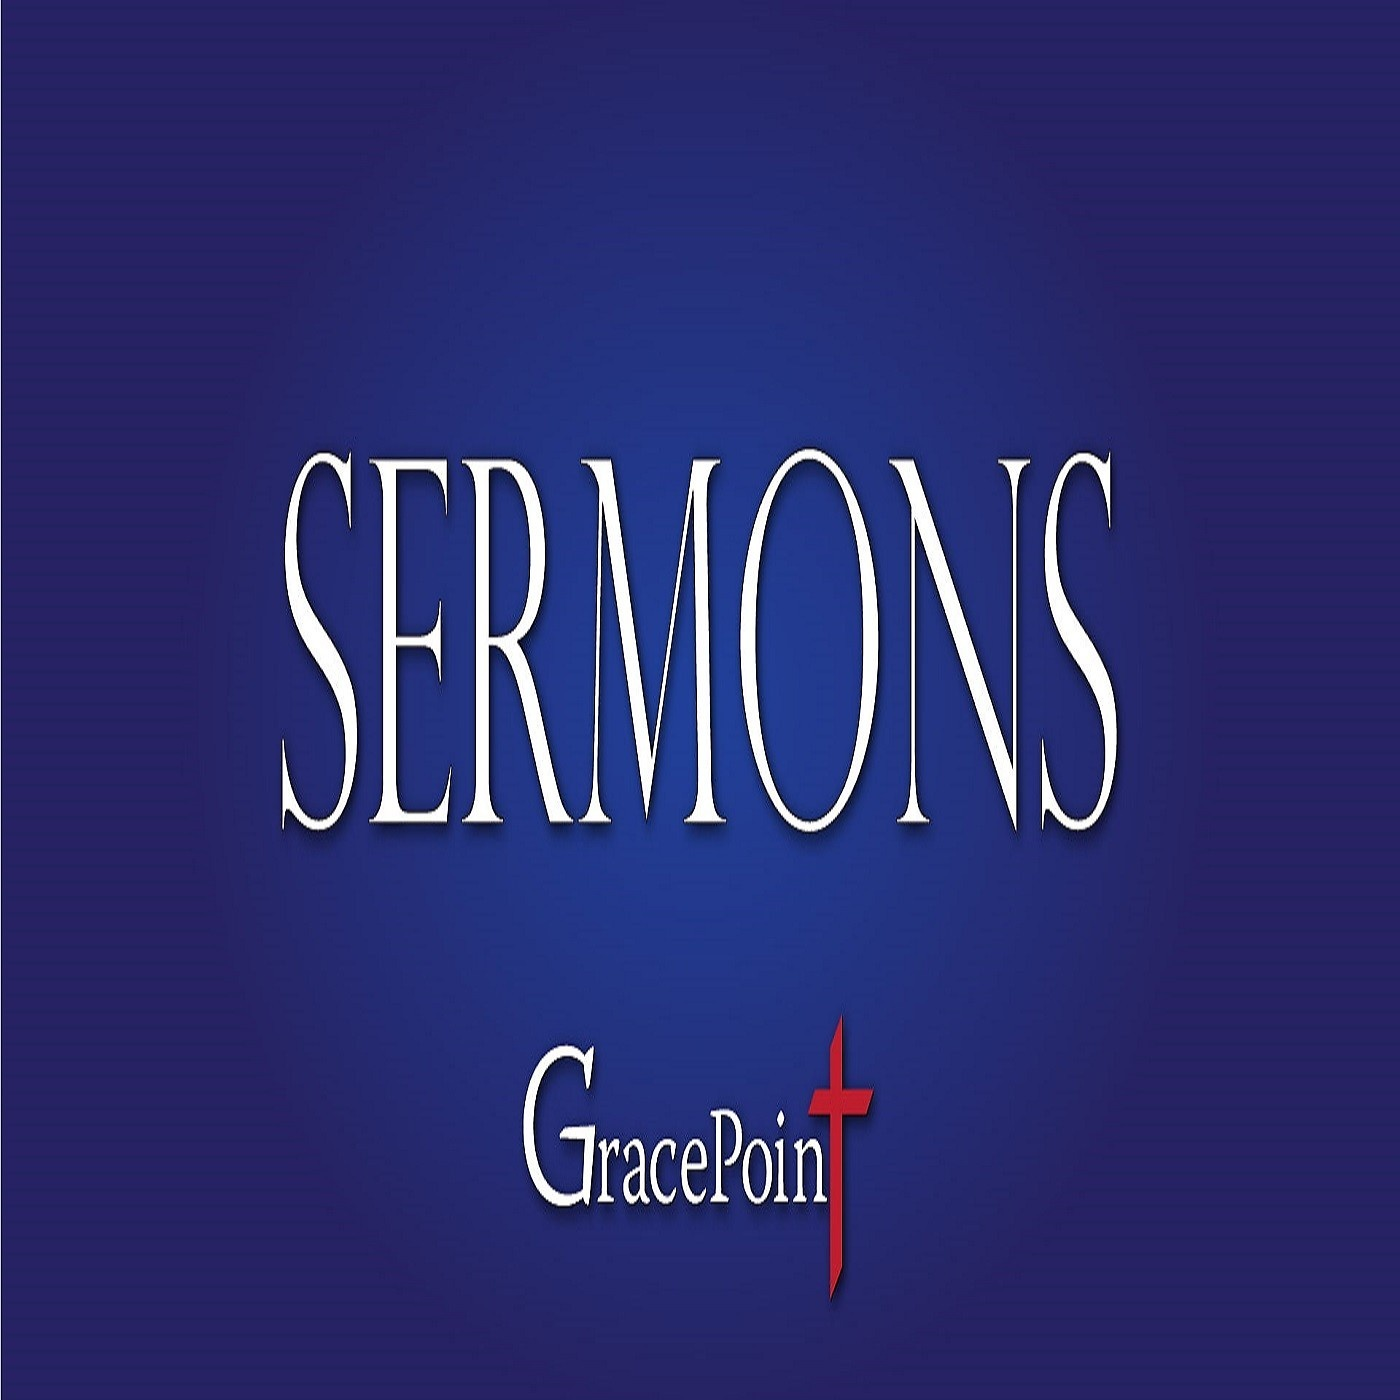 Gracepoint Church-Jim Devney (audio)